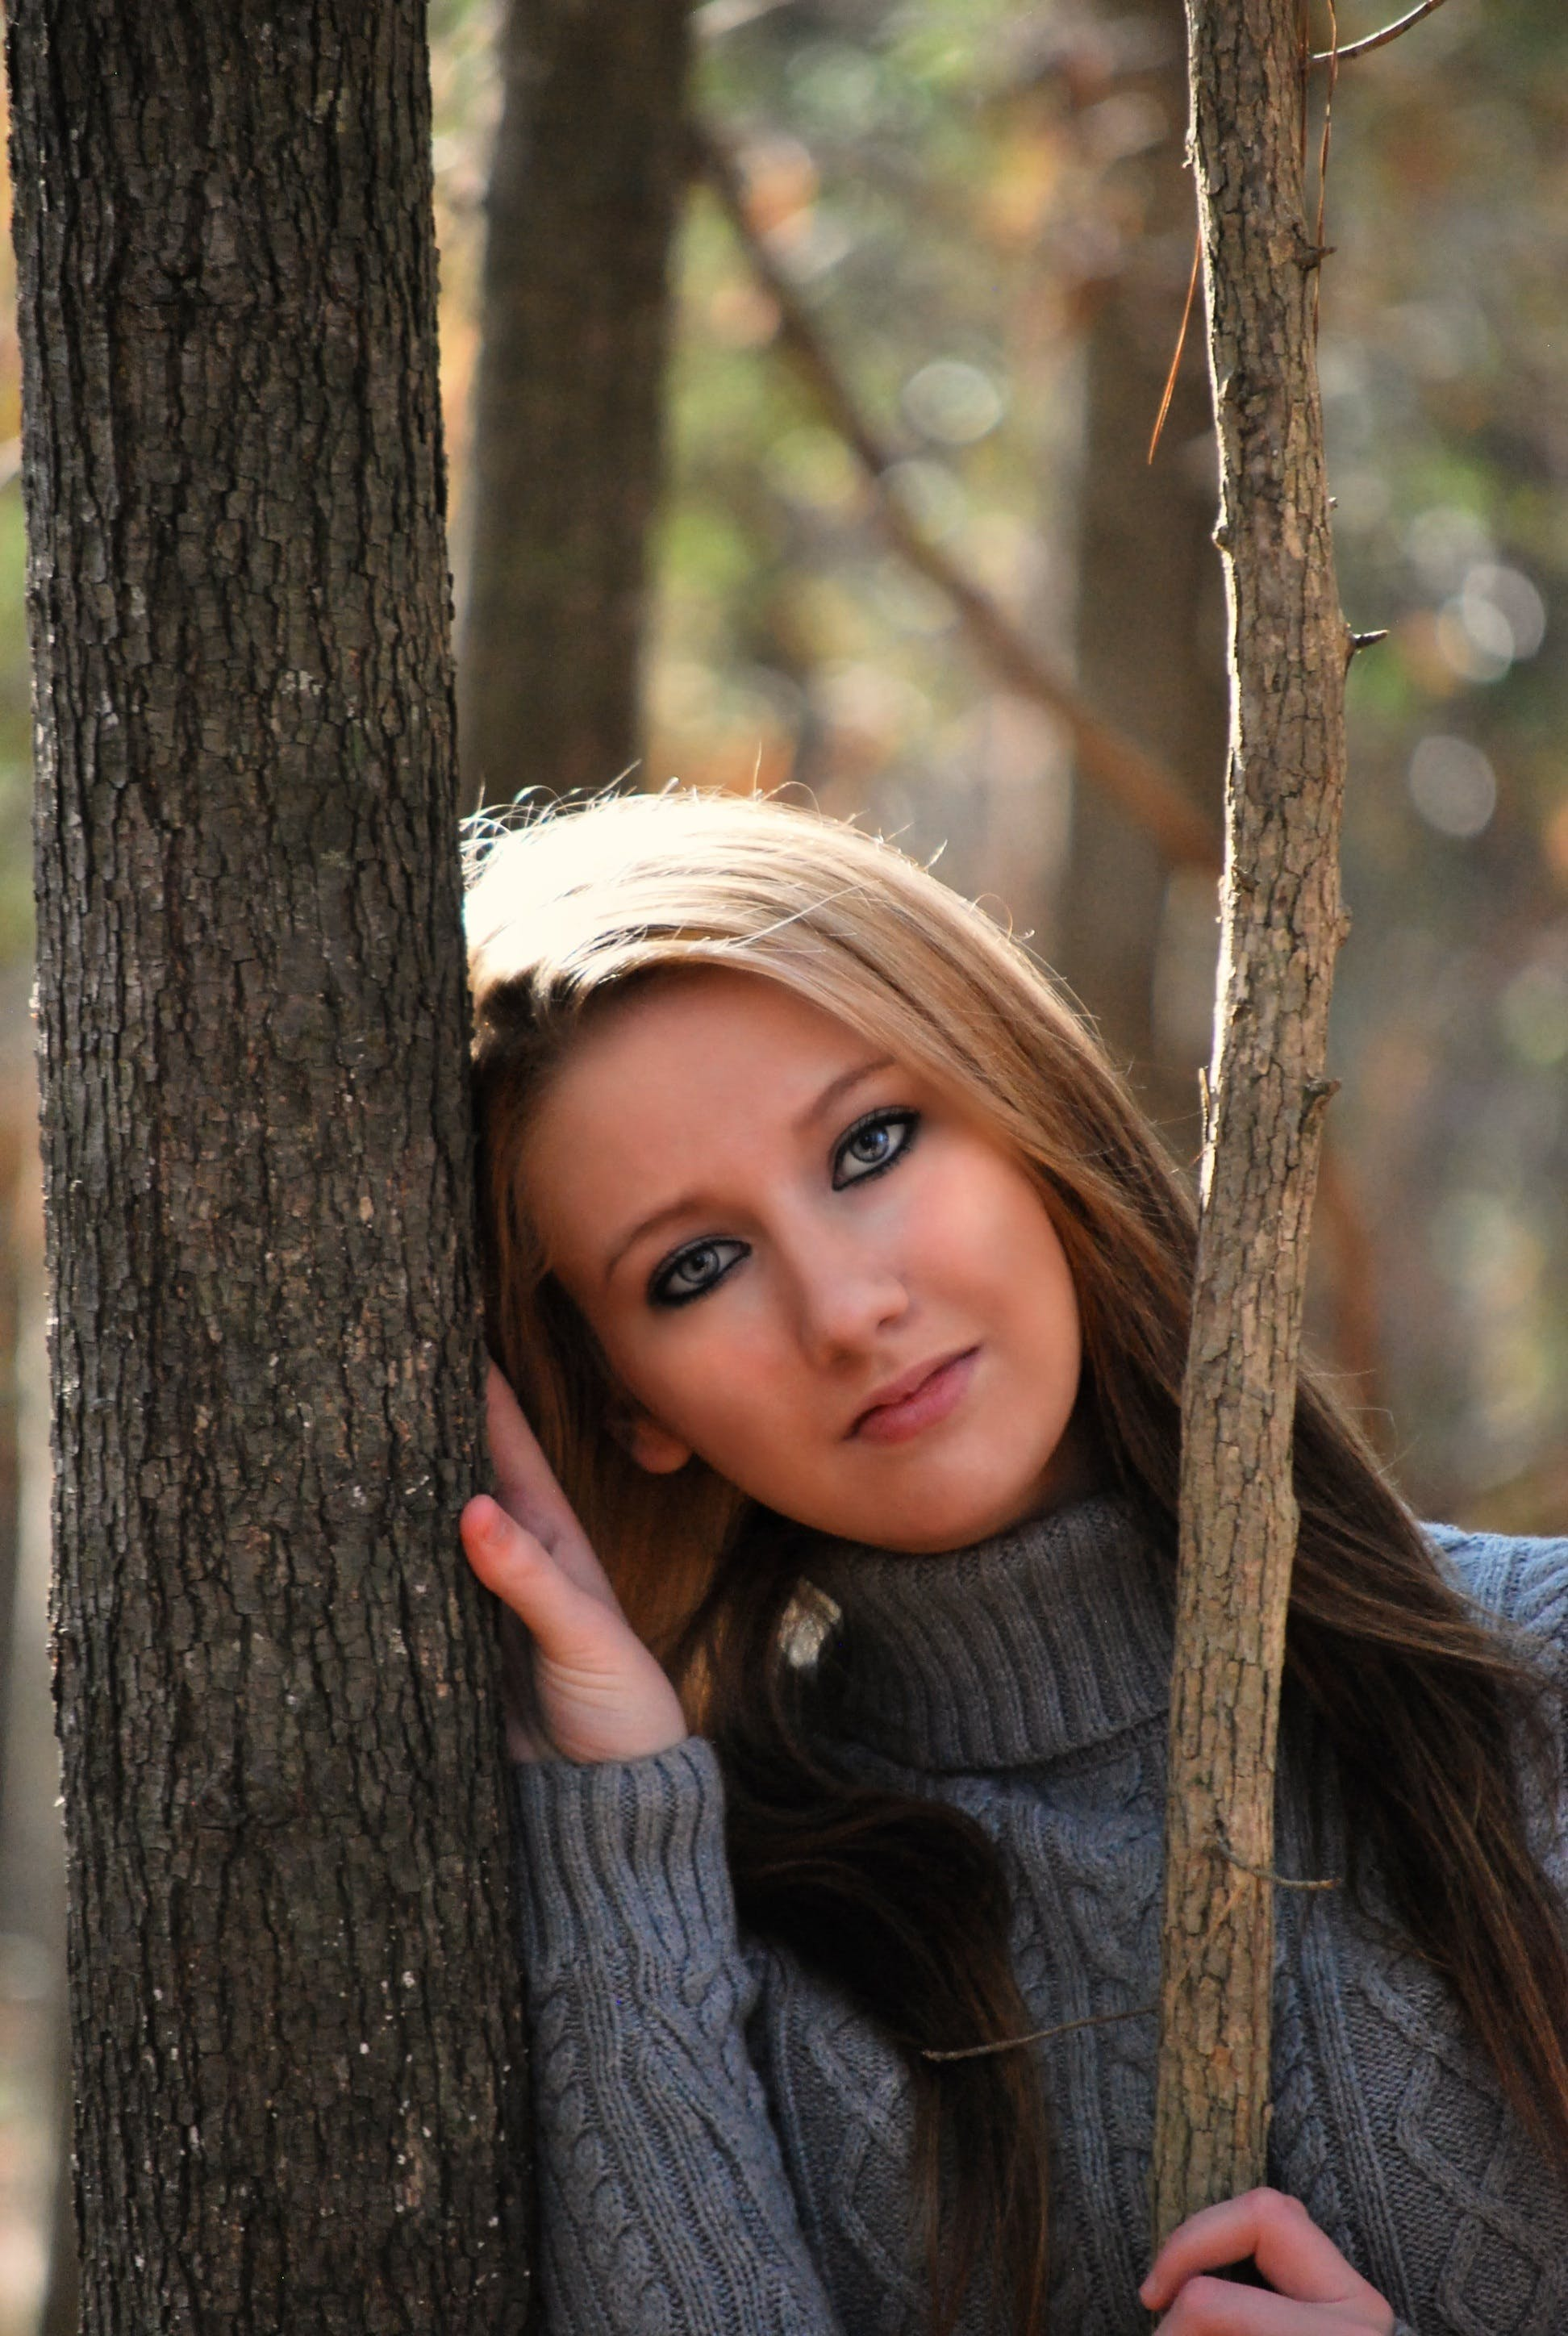 Woman in Grey Sweater Lying on Tree during Daytime